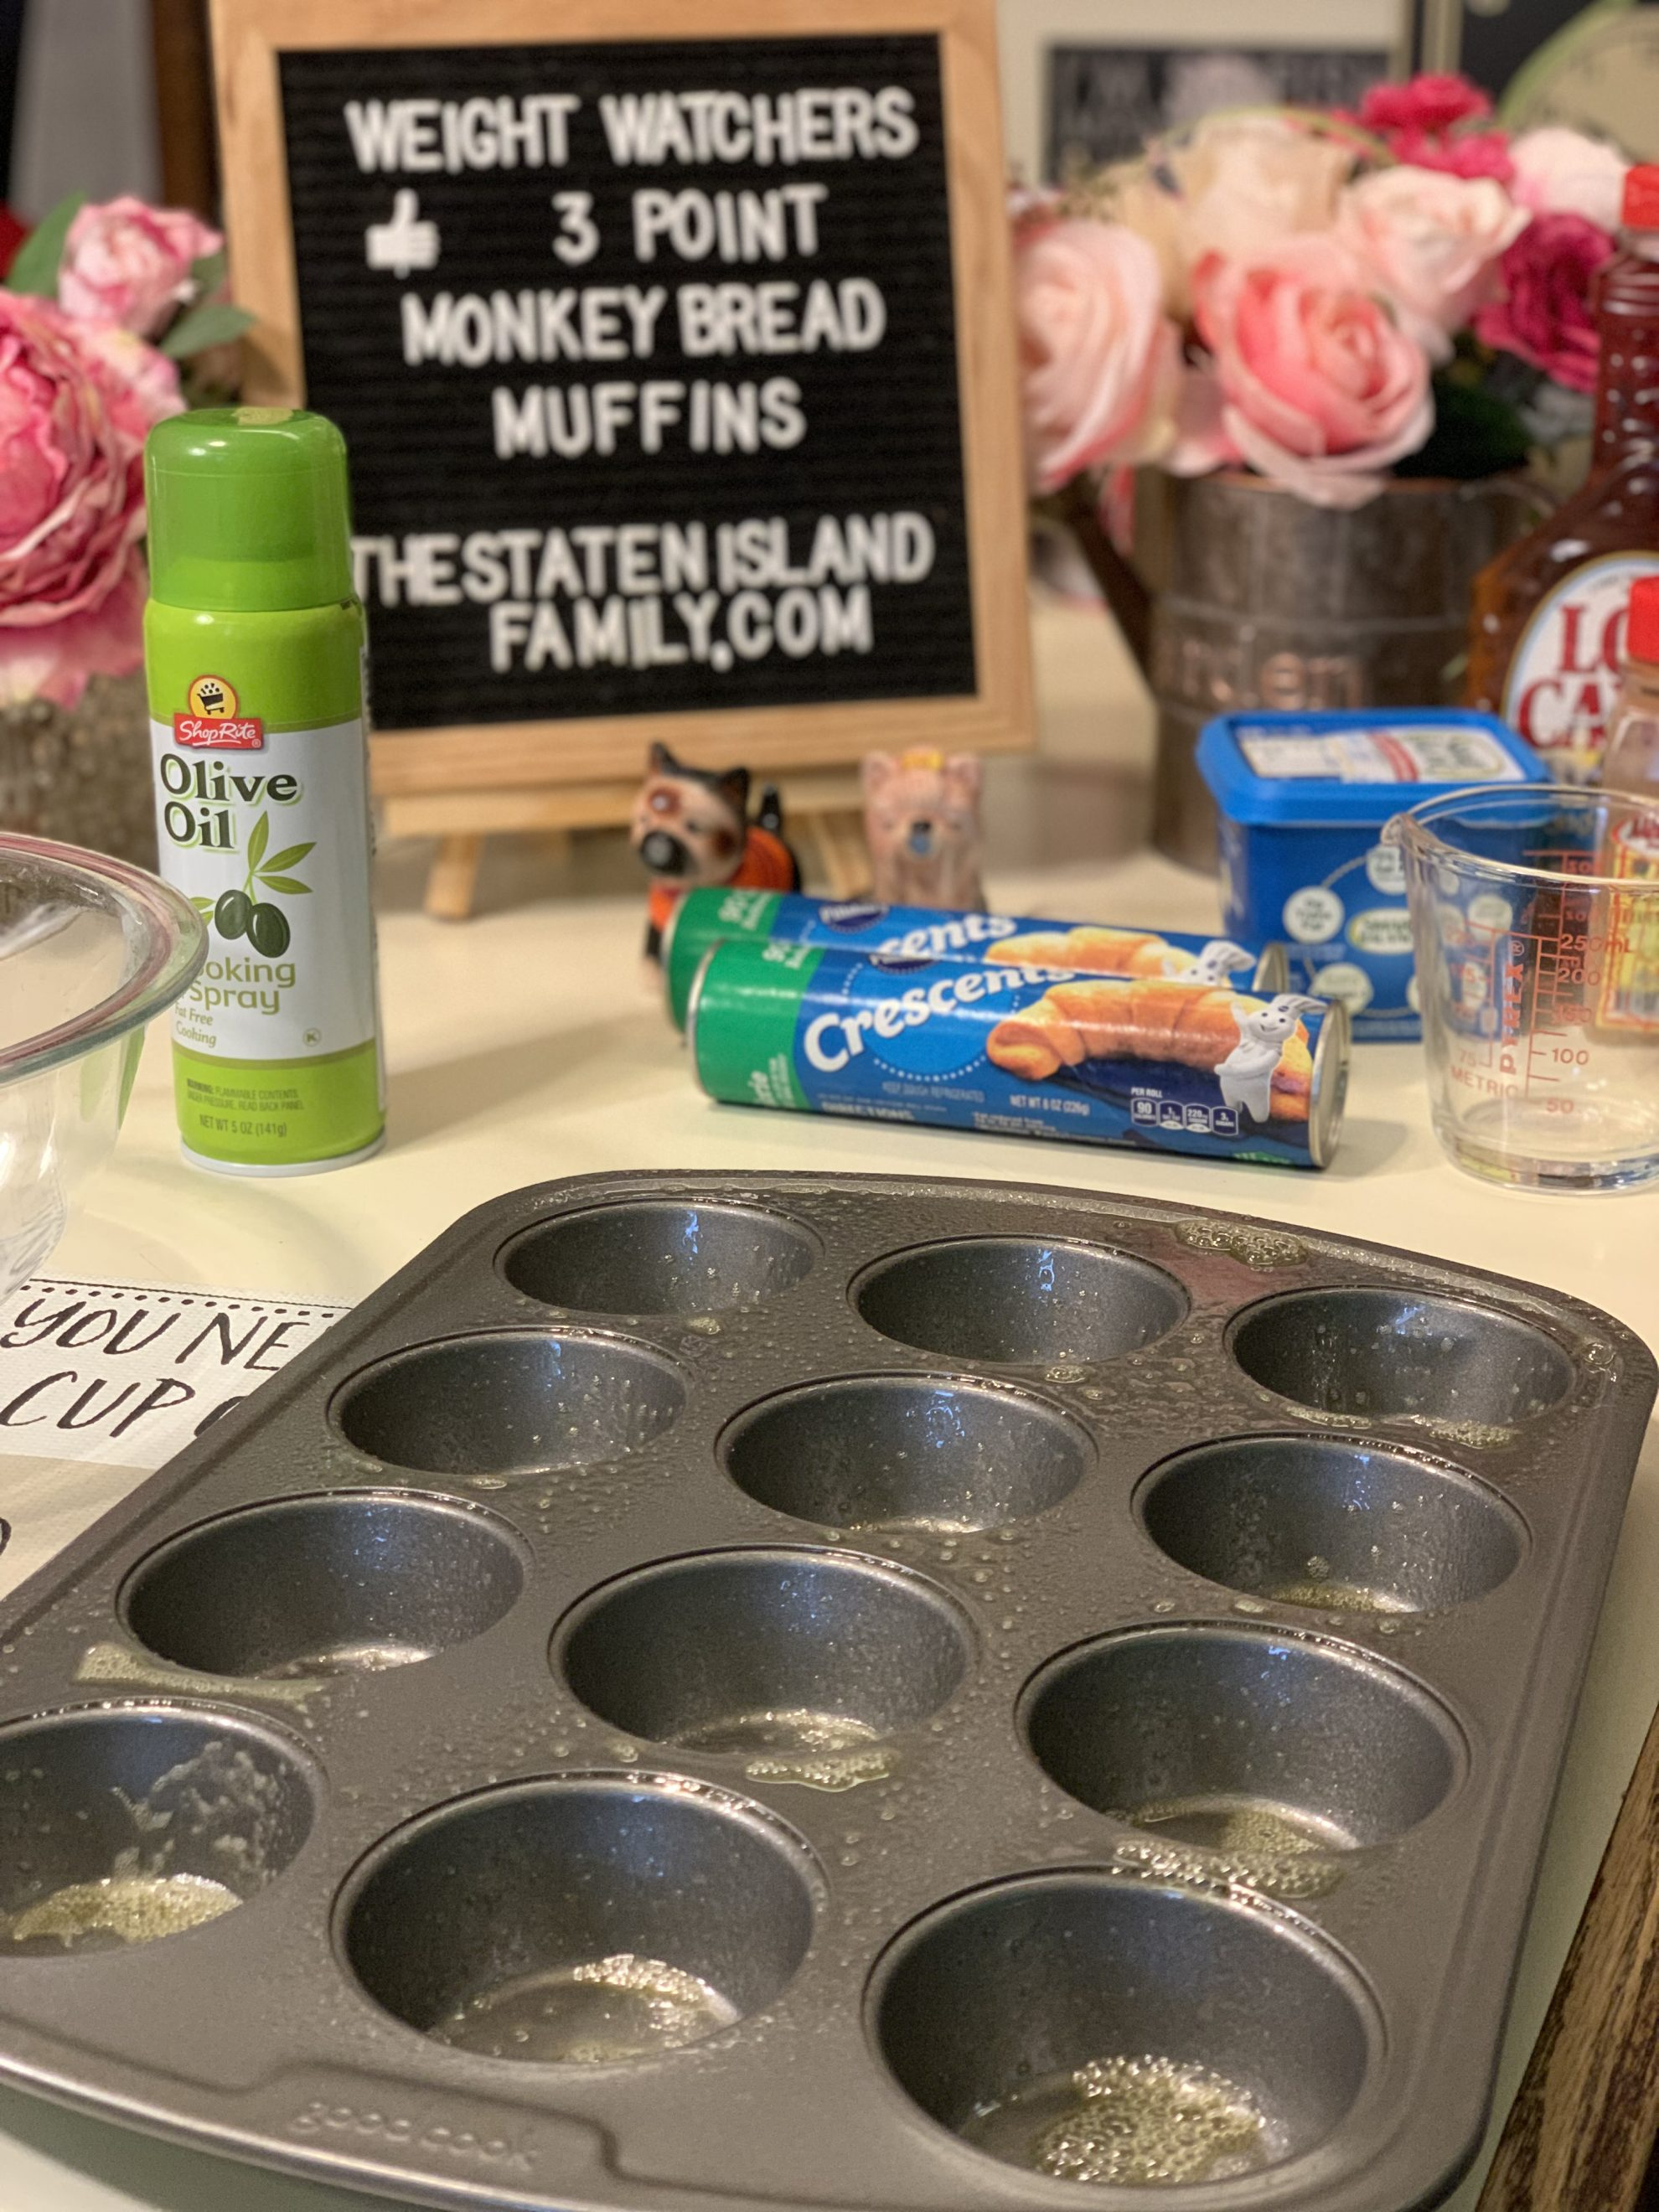 Weight Watchers Monkey Bread Muffins